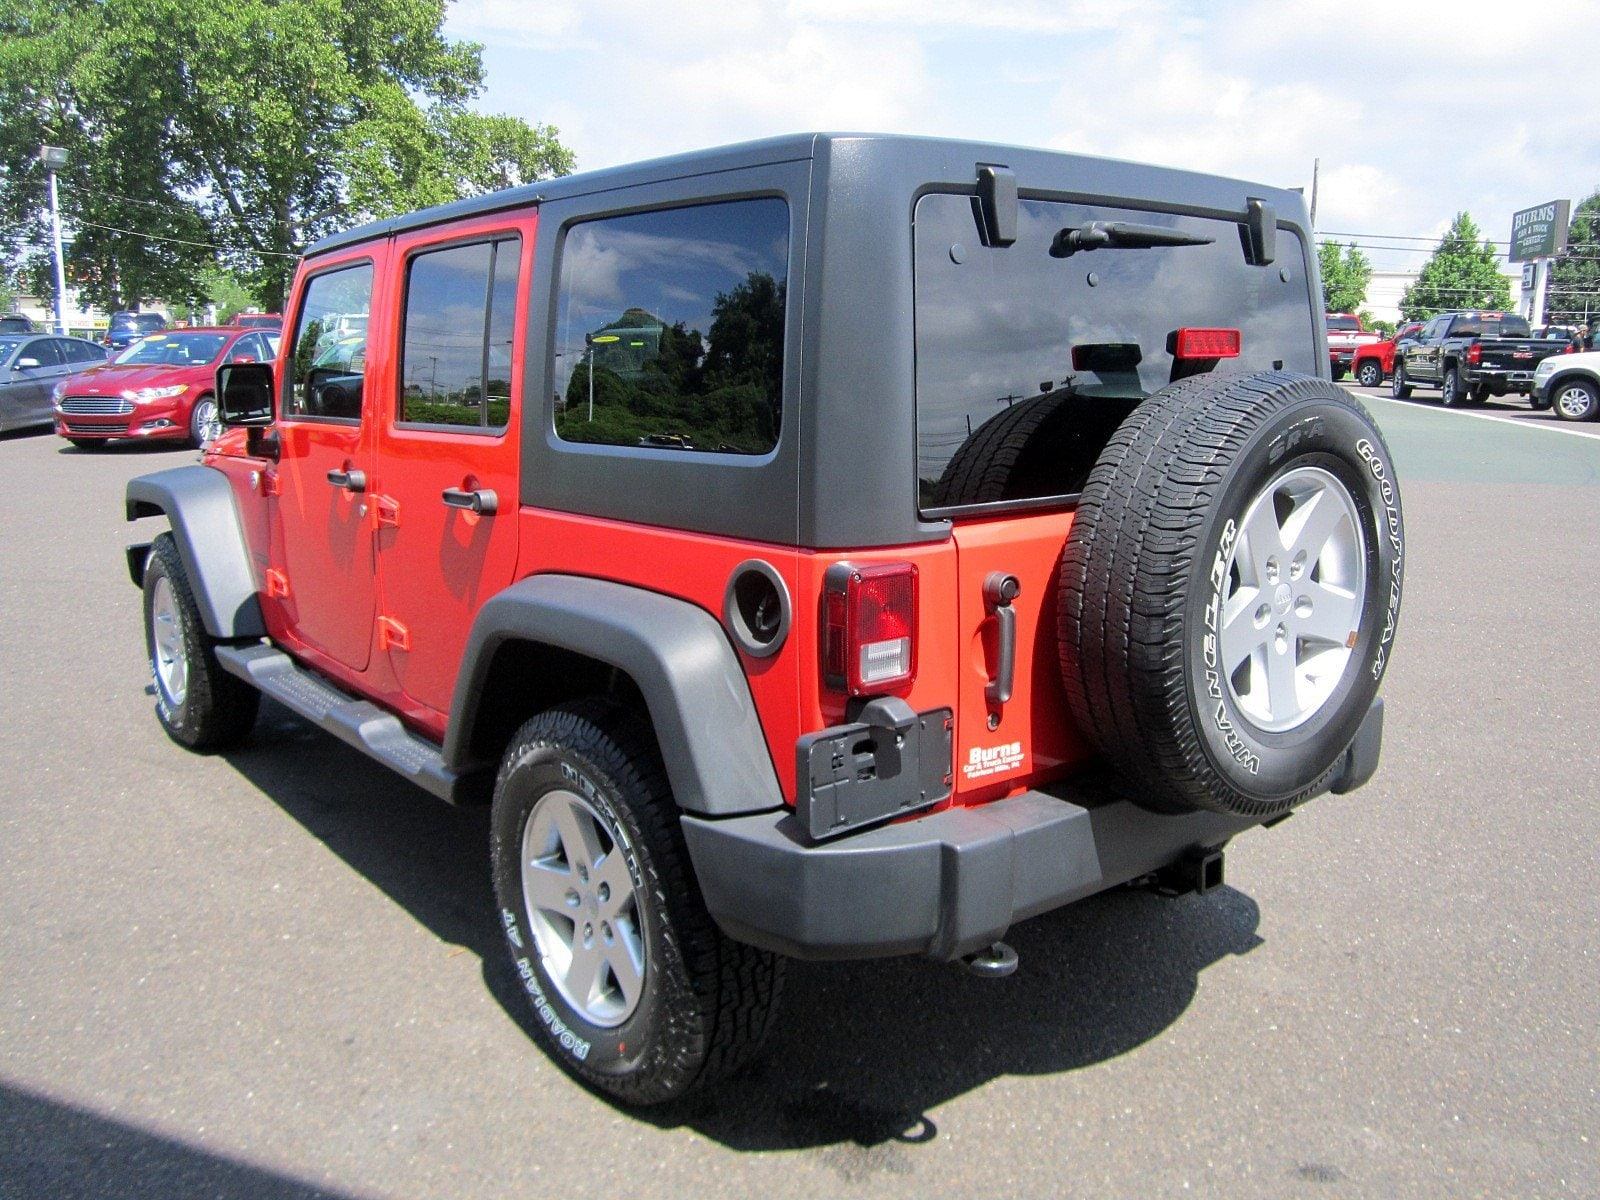 ... 2013 Jeep Wrangler Unlimited UNLIMITED SPORT 4WD HARD TOP 4 DOOR SUV ...